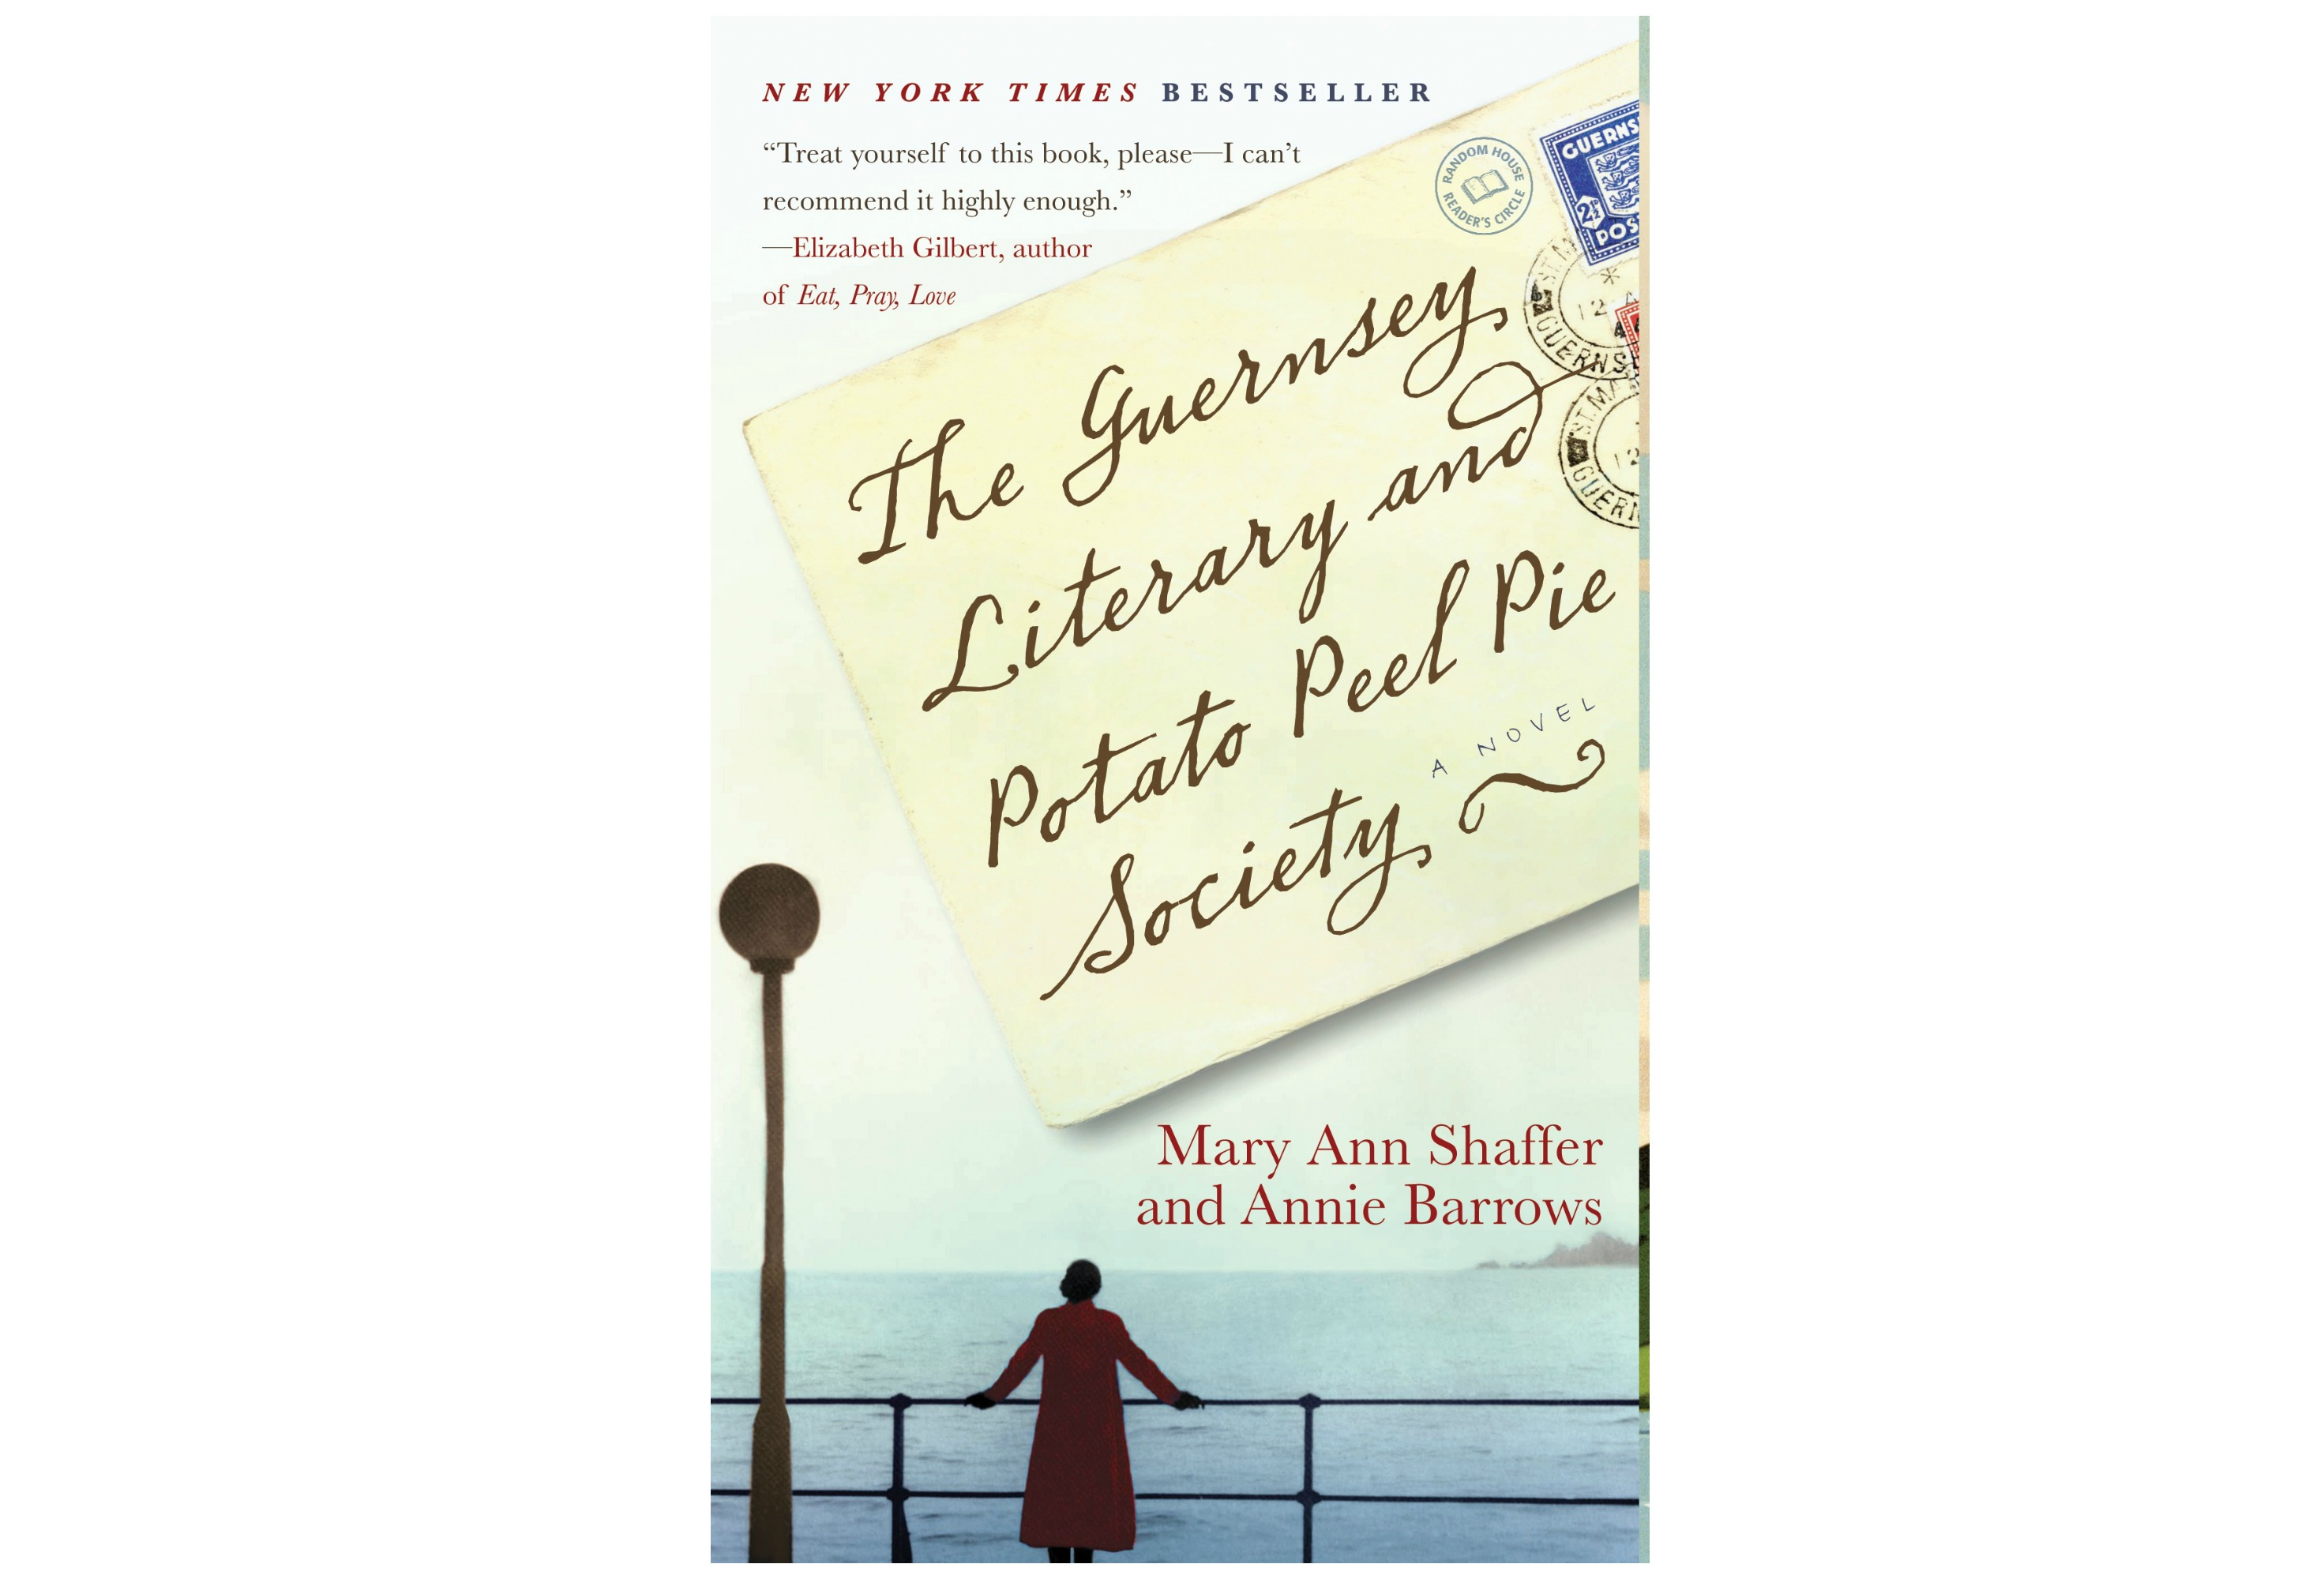 March Book Club: The Guernsey Literary and Potato Peel Pie Society